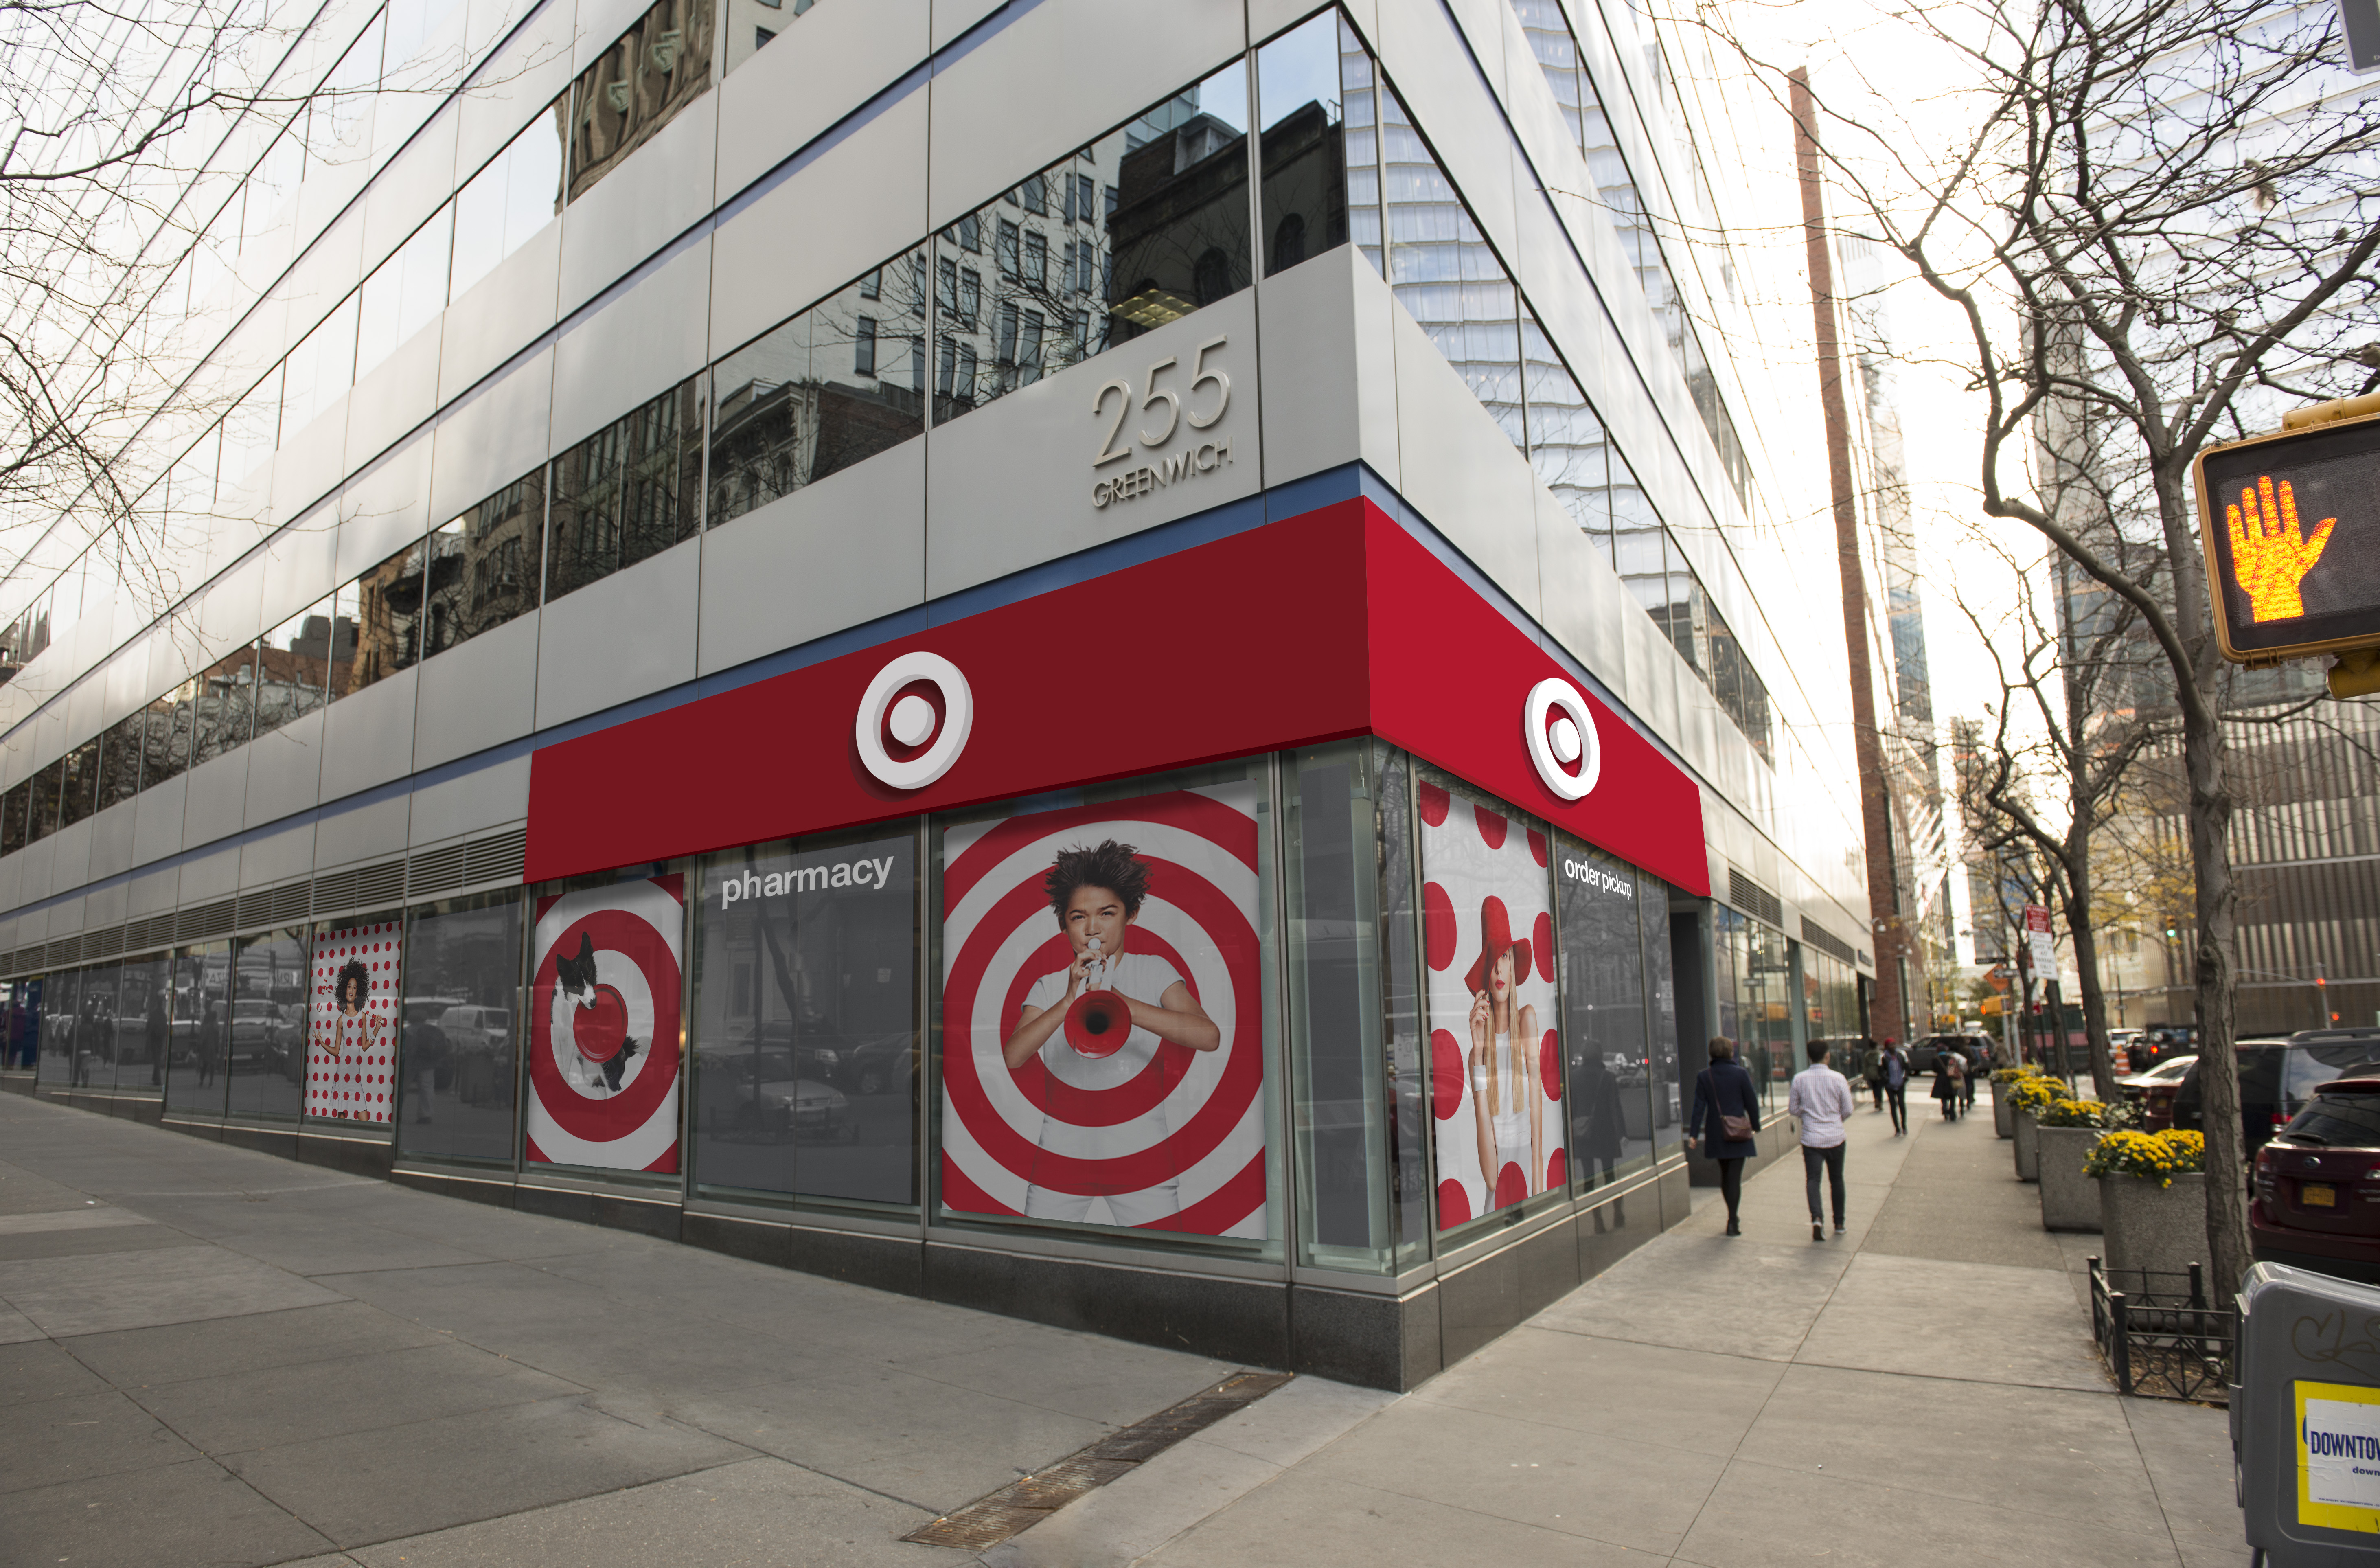 Rendering of the Target store planned for TriBeCa